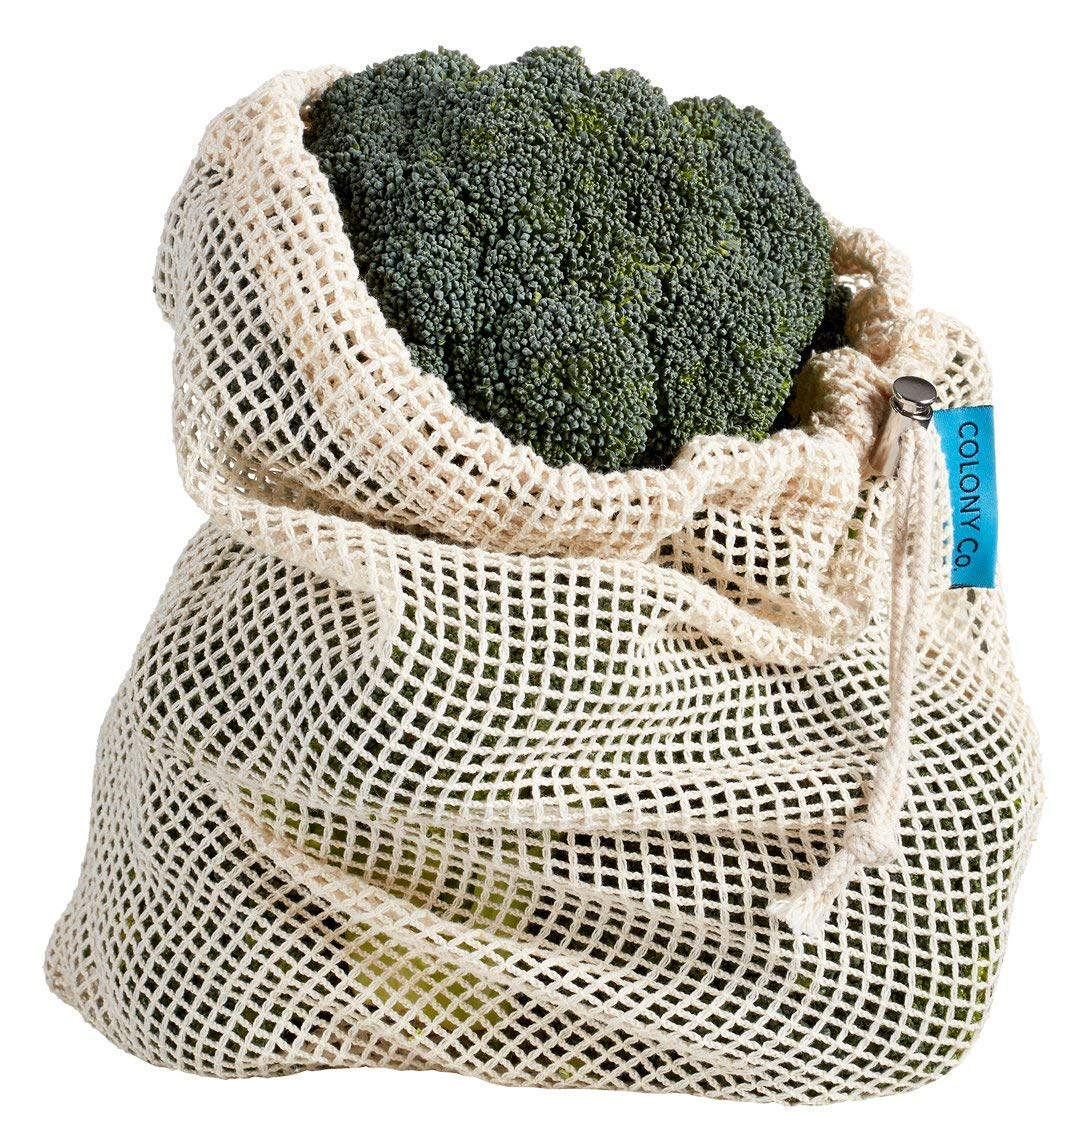 Colony Co. 10-Piece Set of Reusable Bags (6 Mesh Produce Bags & 4 Bulk Bin Bags) Cotton Materials are Biodegradable, Machine Washable, Recyclable Packaging, Tare Weight on Label, Double-Stitched Seams by COLONY CO (Image #6)